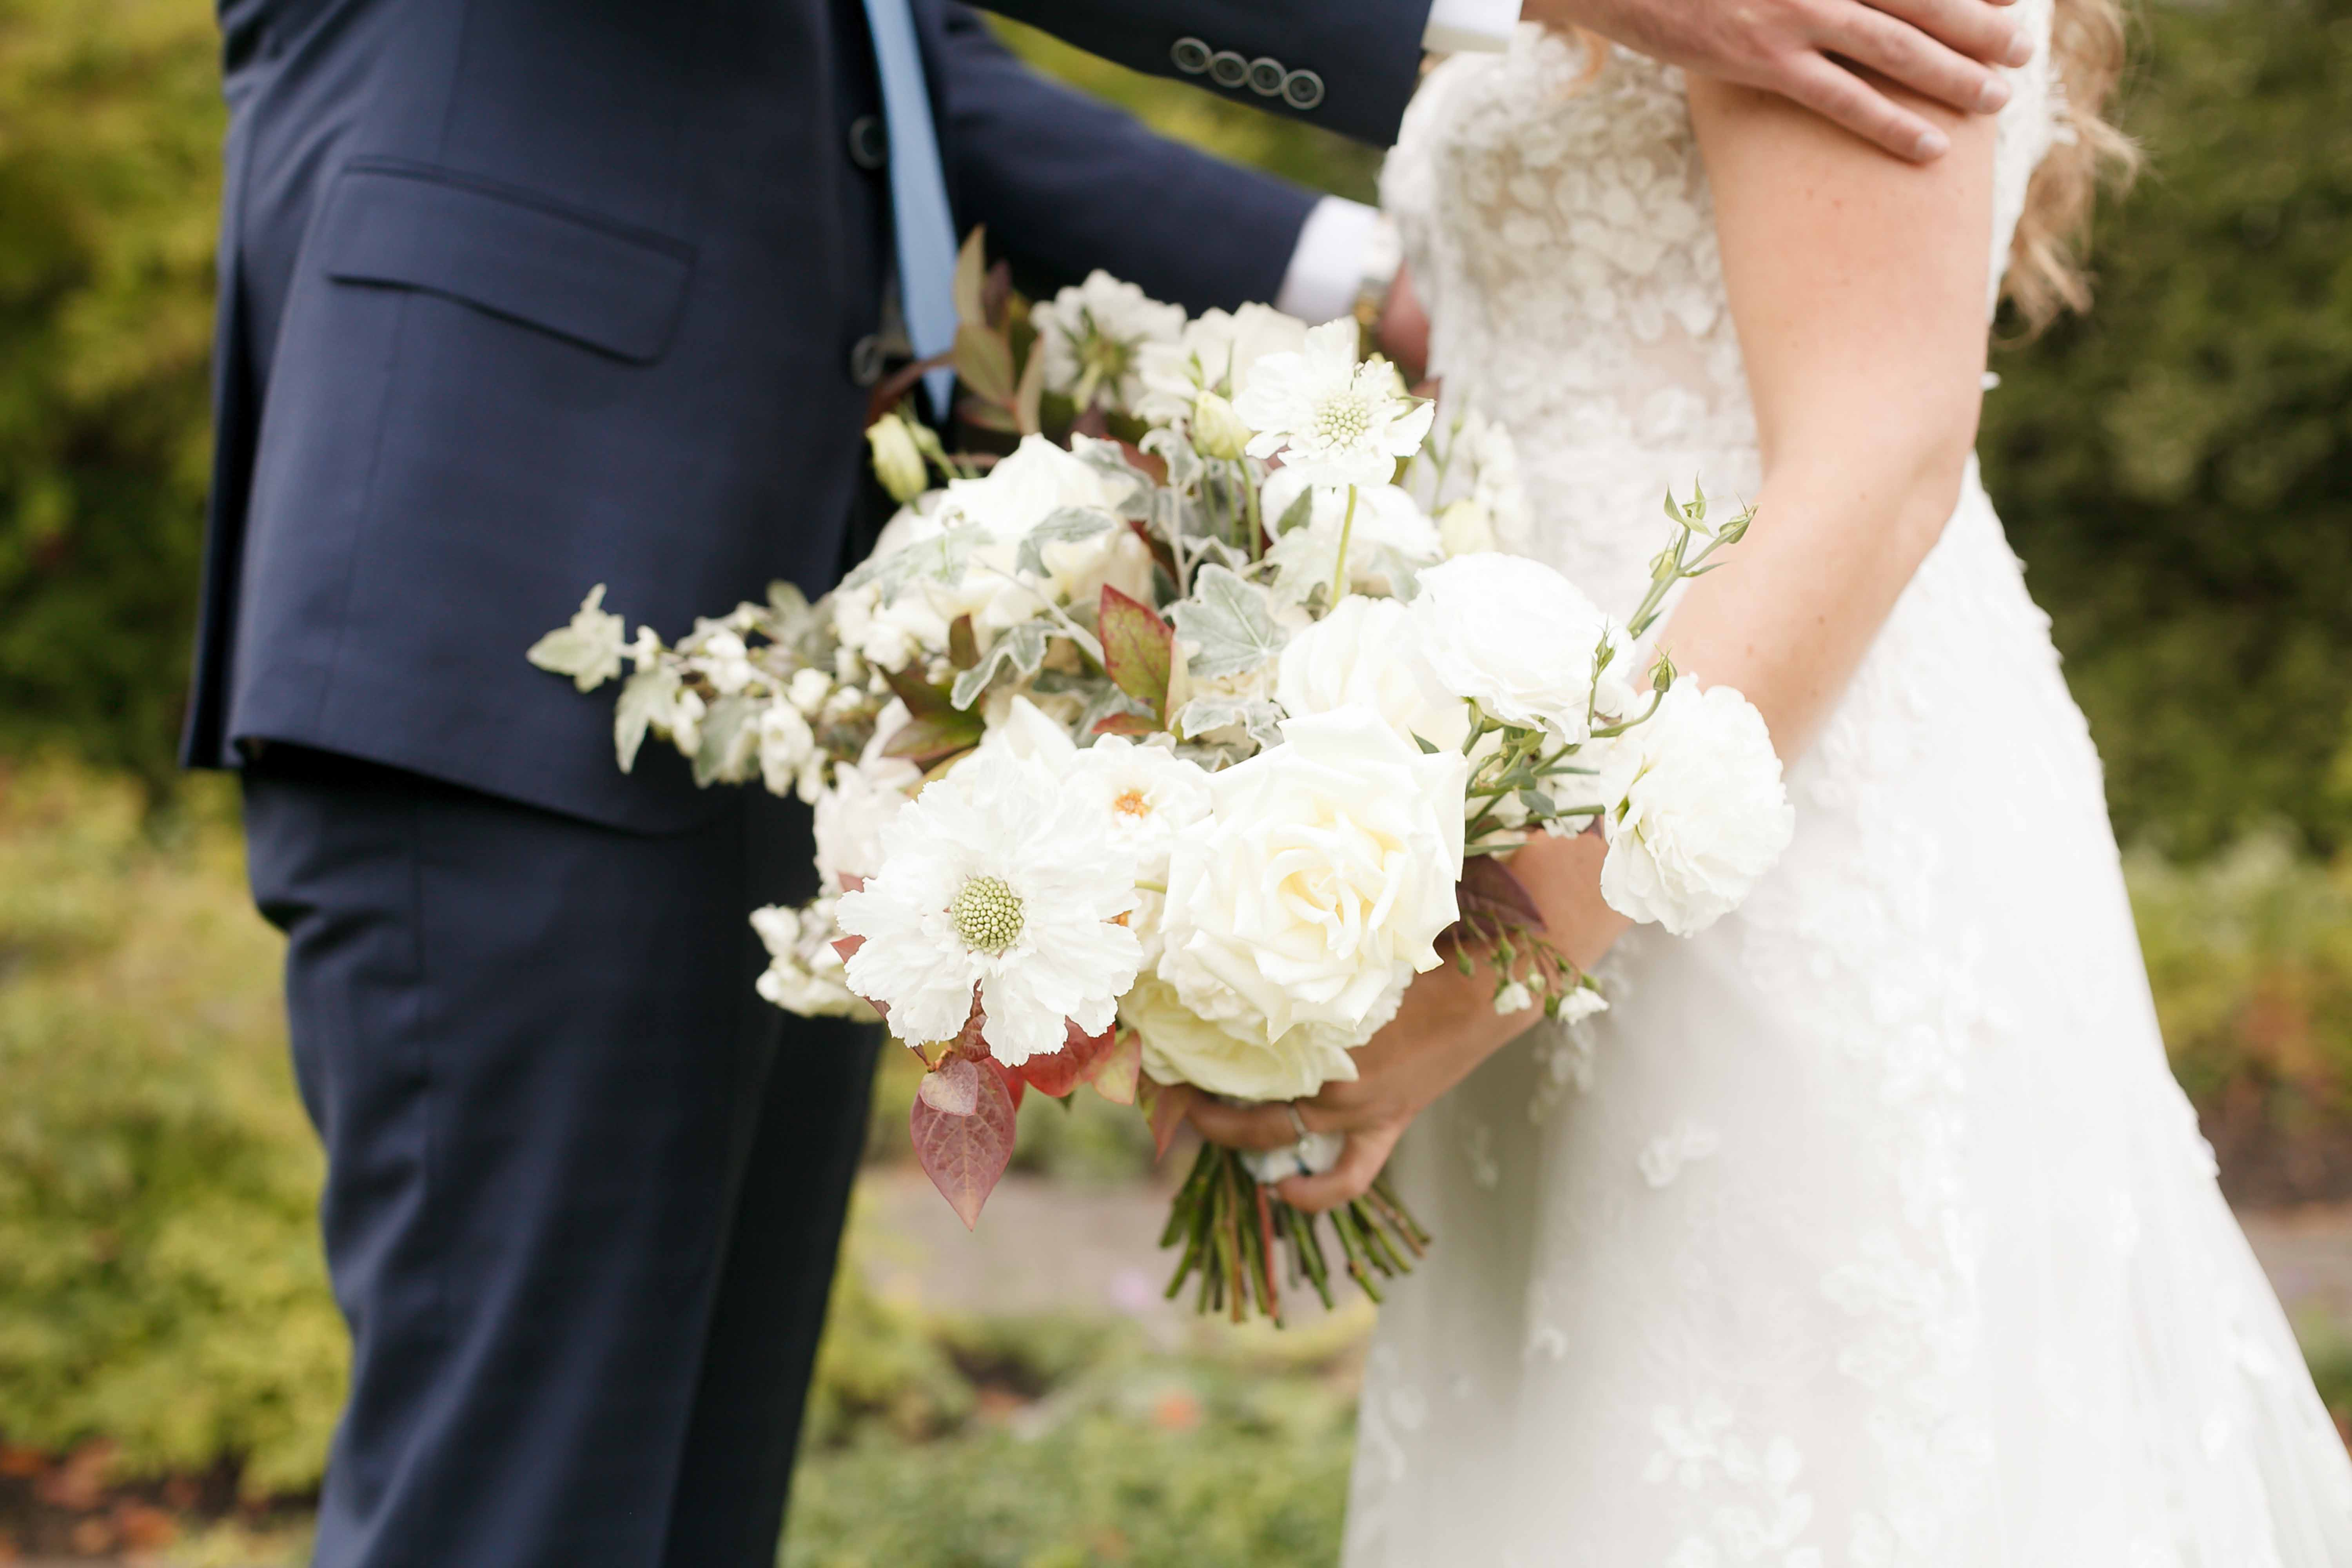 Fall bridal bouquet in cream with fall textures